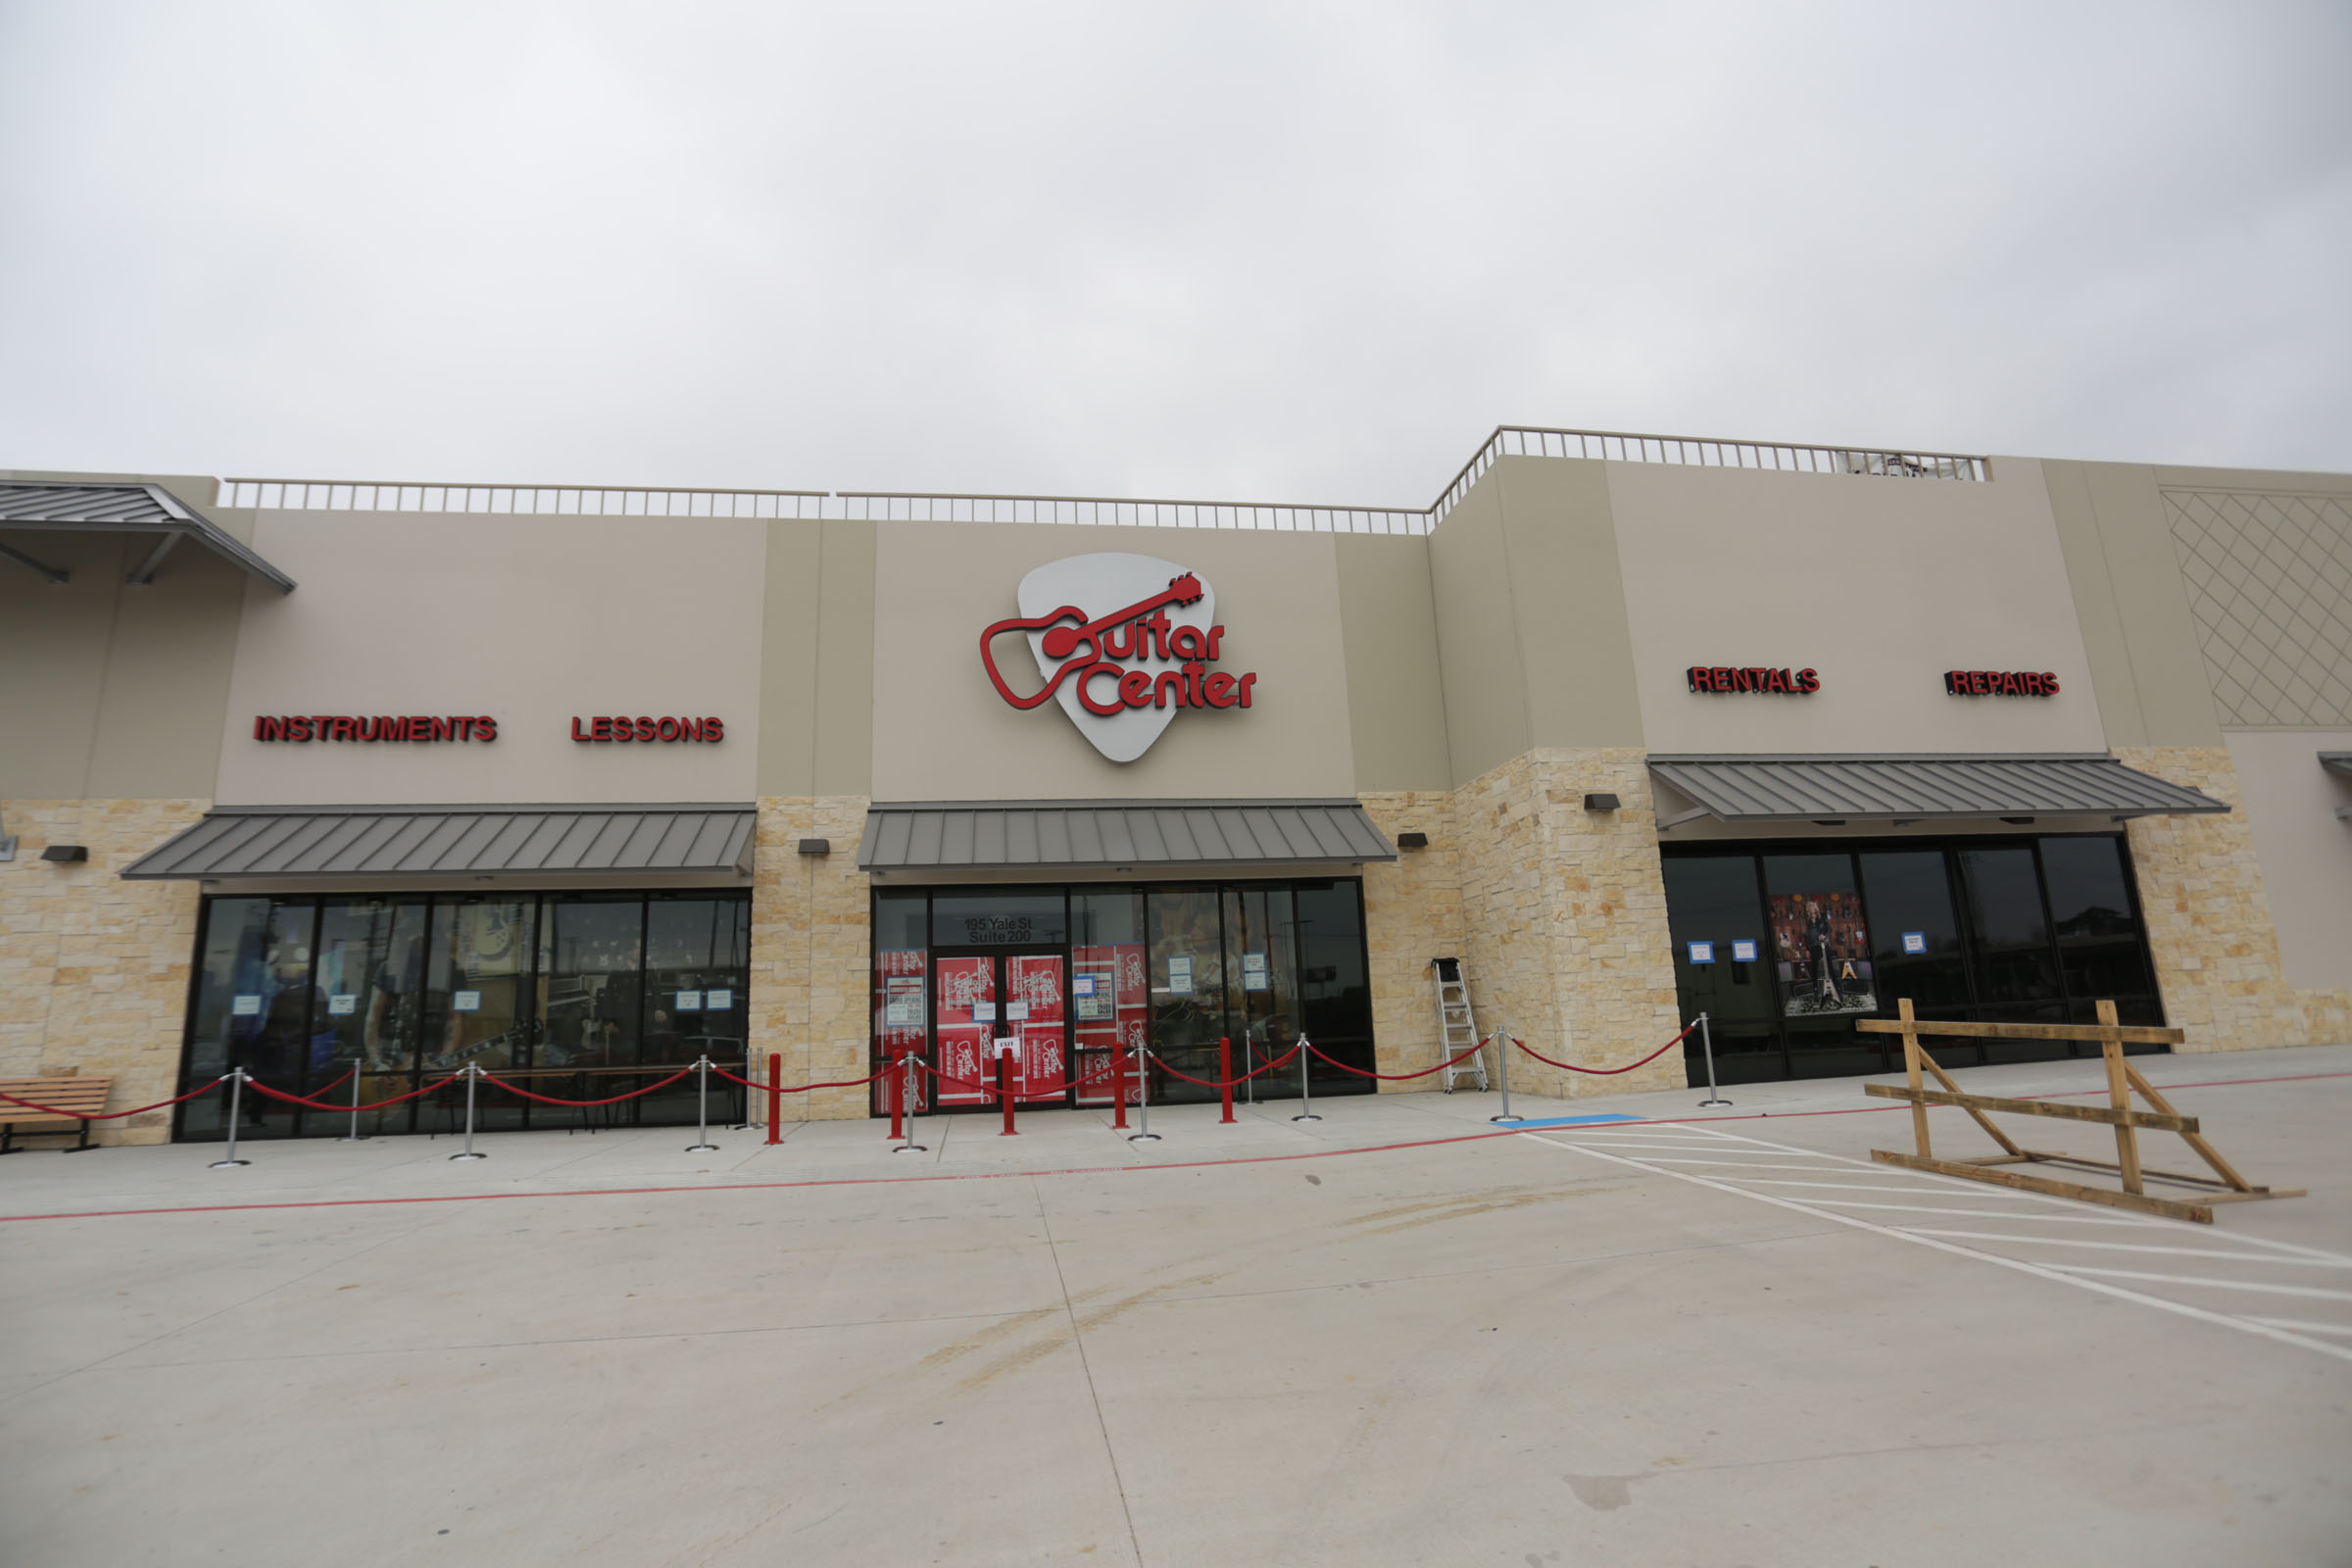 Guitar Center Central Houston can also help build a maintenance plan that fits you and your guitar or bass needs, including custom setups, restrings and more. We also take care of fret repairs, hardware and pickup installations, upgrades and customizations, bone and graphite services and more.